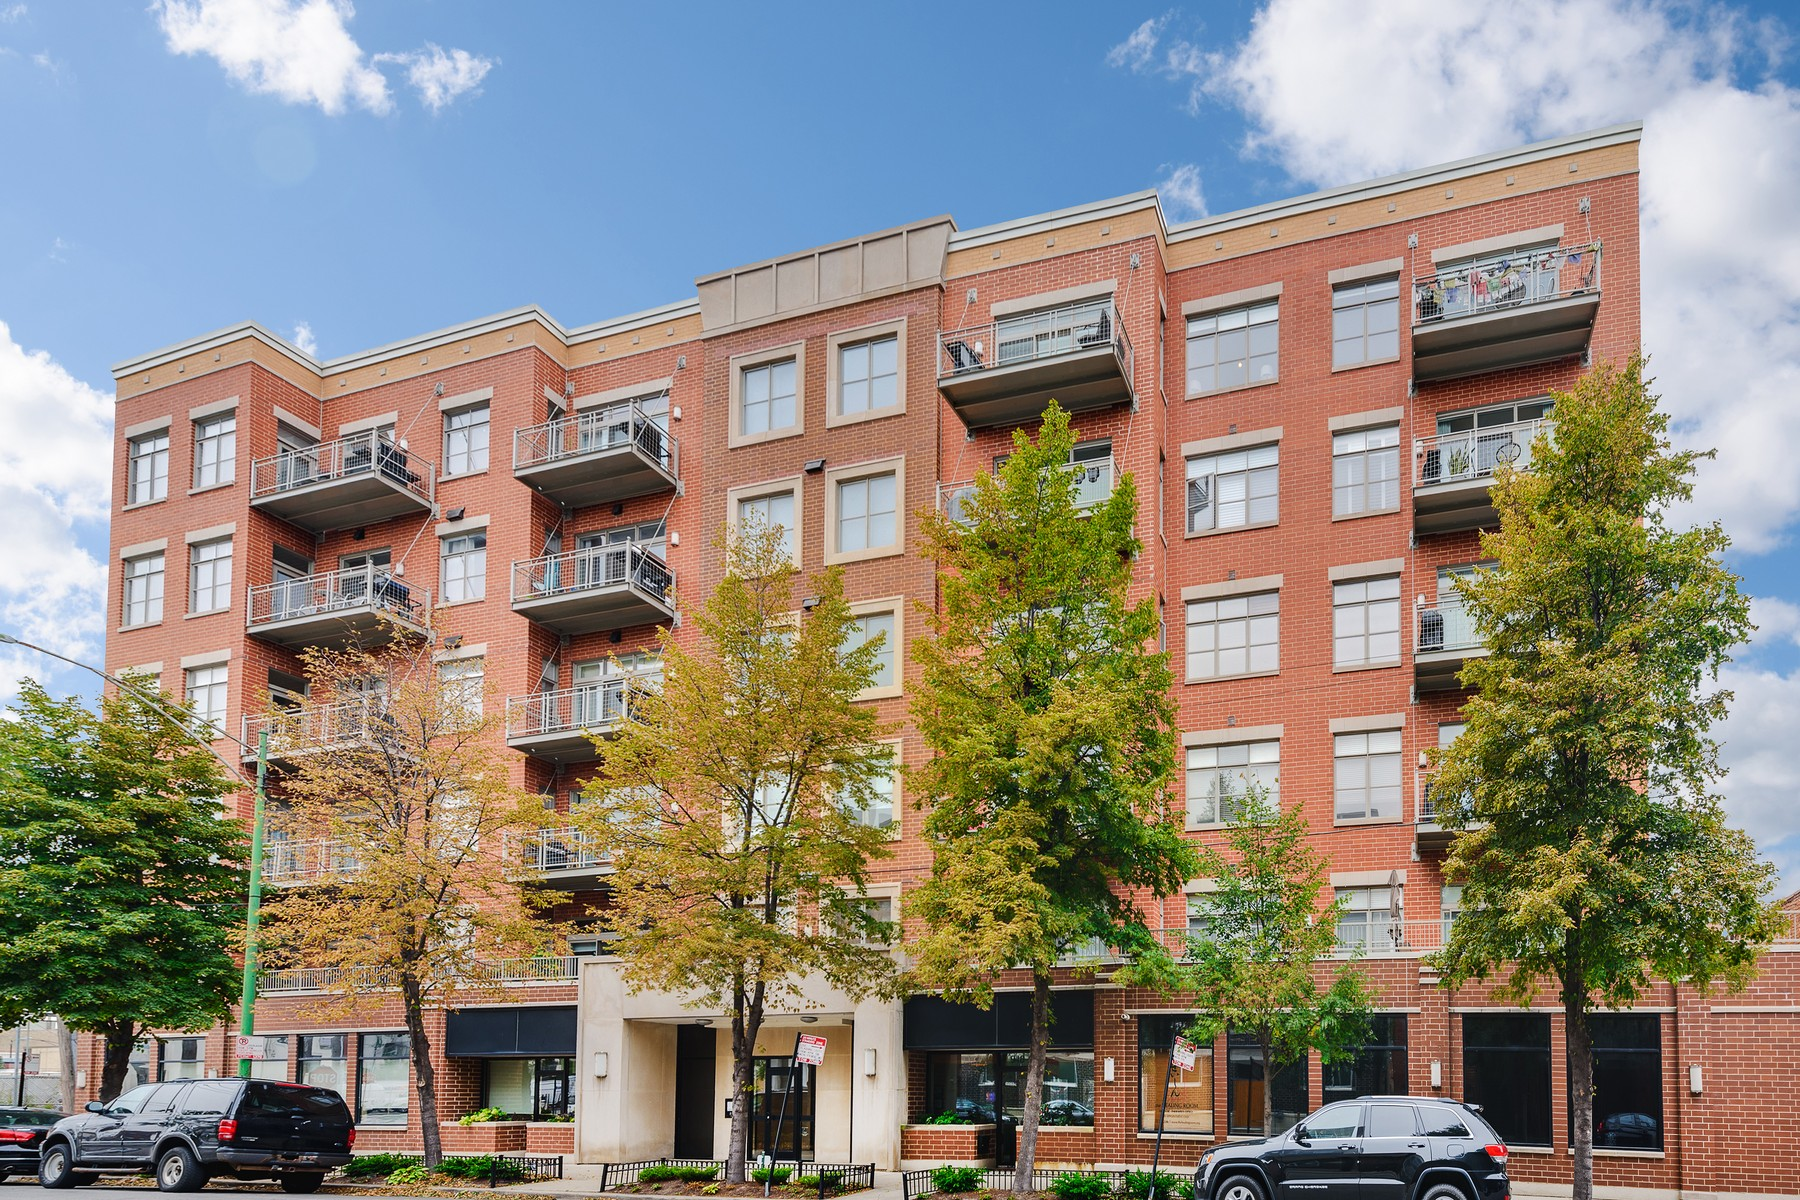 Condominium for Sale at Totally Renovated Penthouse Duplex 950 W Huron Street Unit 606, Near North Side, Chicago, Illinois, 60642 United States